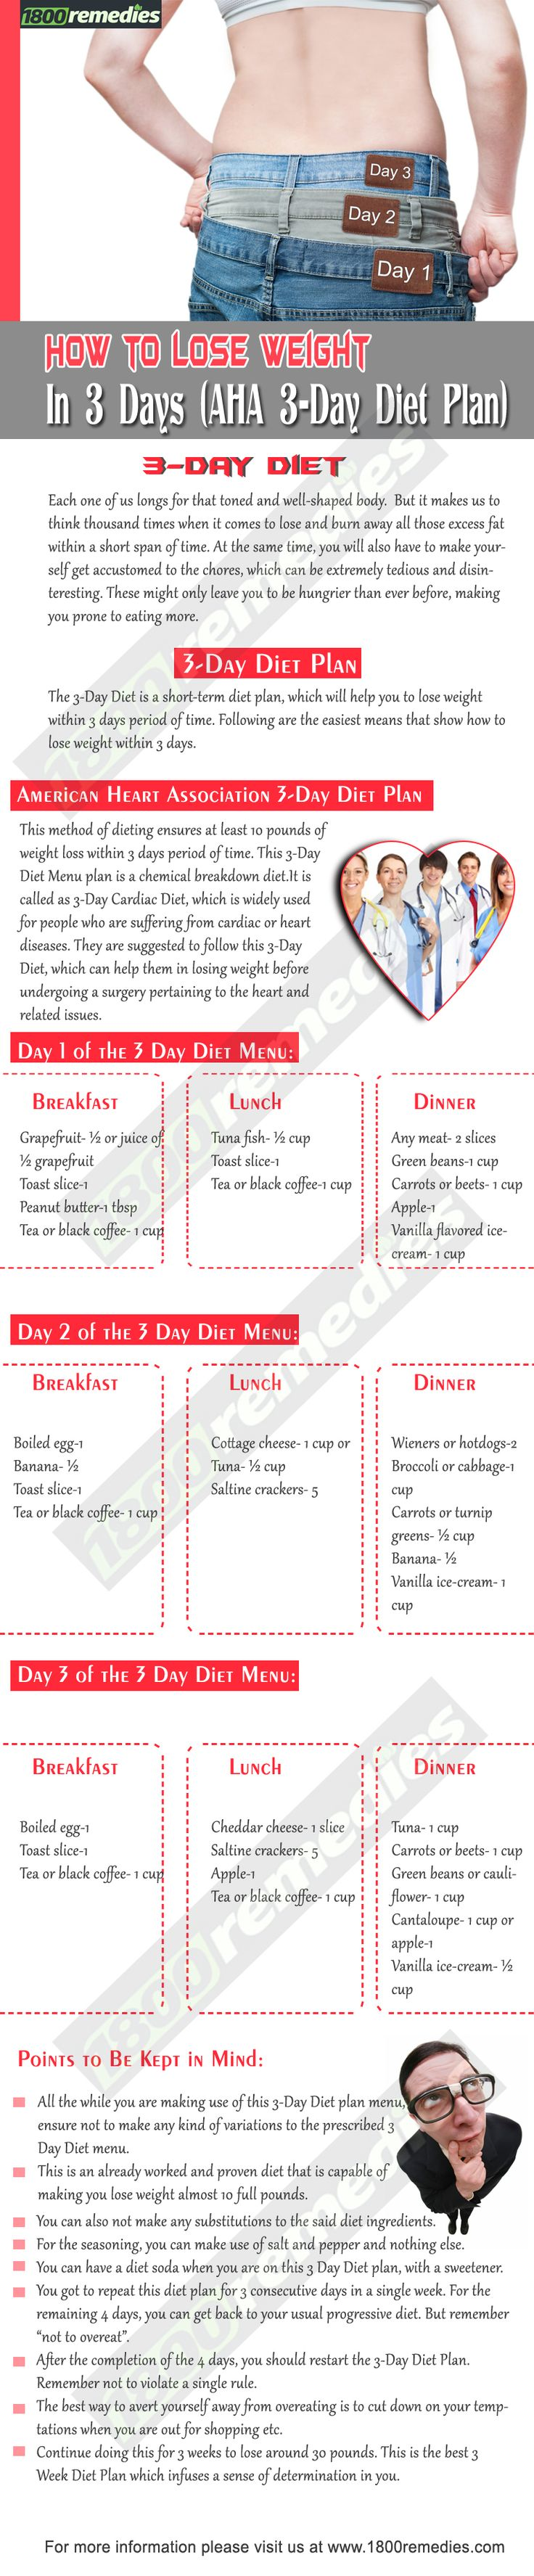 The 3-Day Diet is a short-term diet plan, which will help you to lose weight within 3 days period of time. Following are the easiest means that show how to lose weight within 3 days.